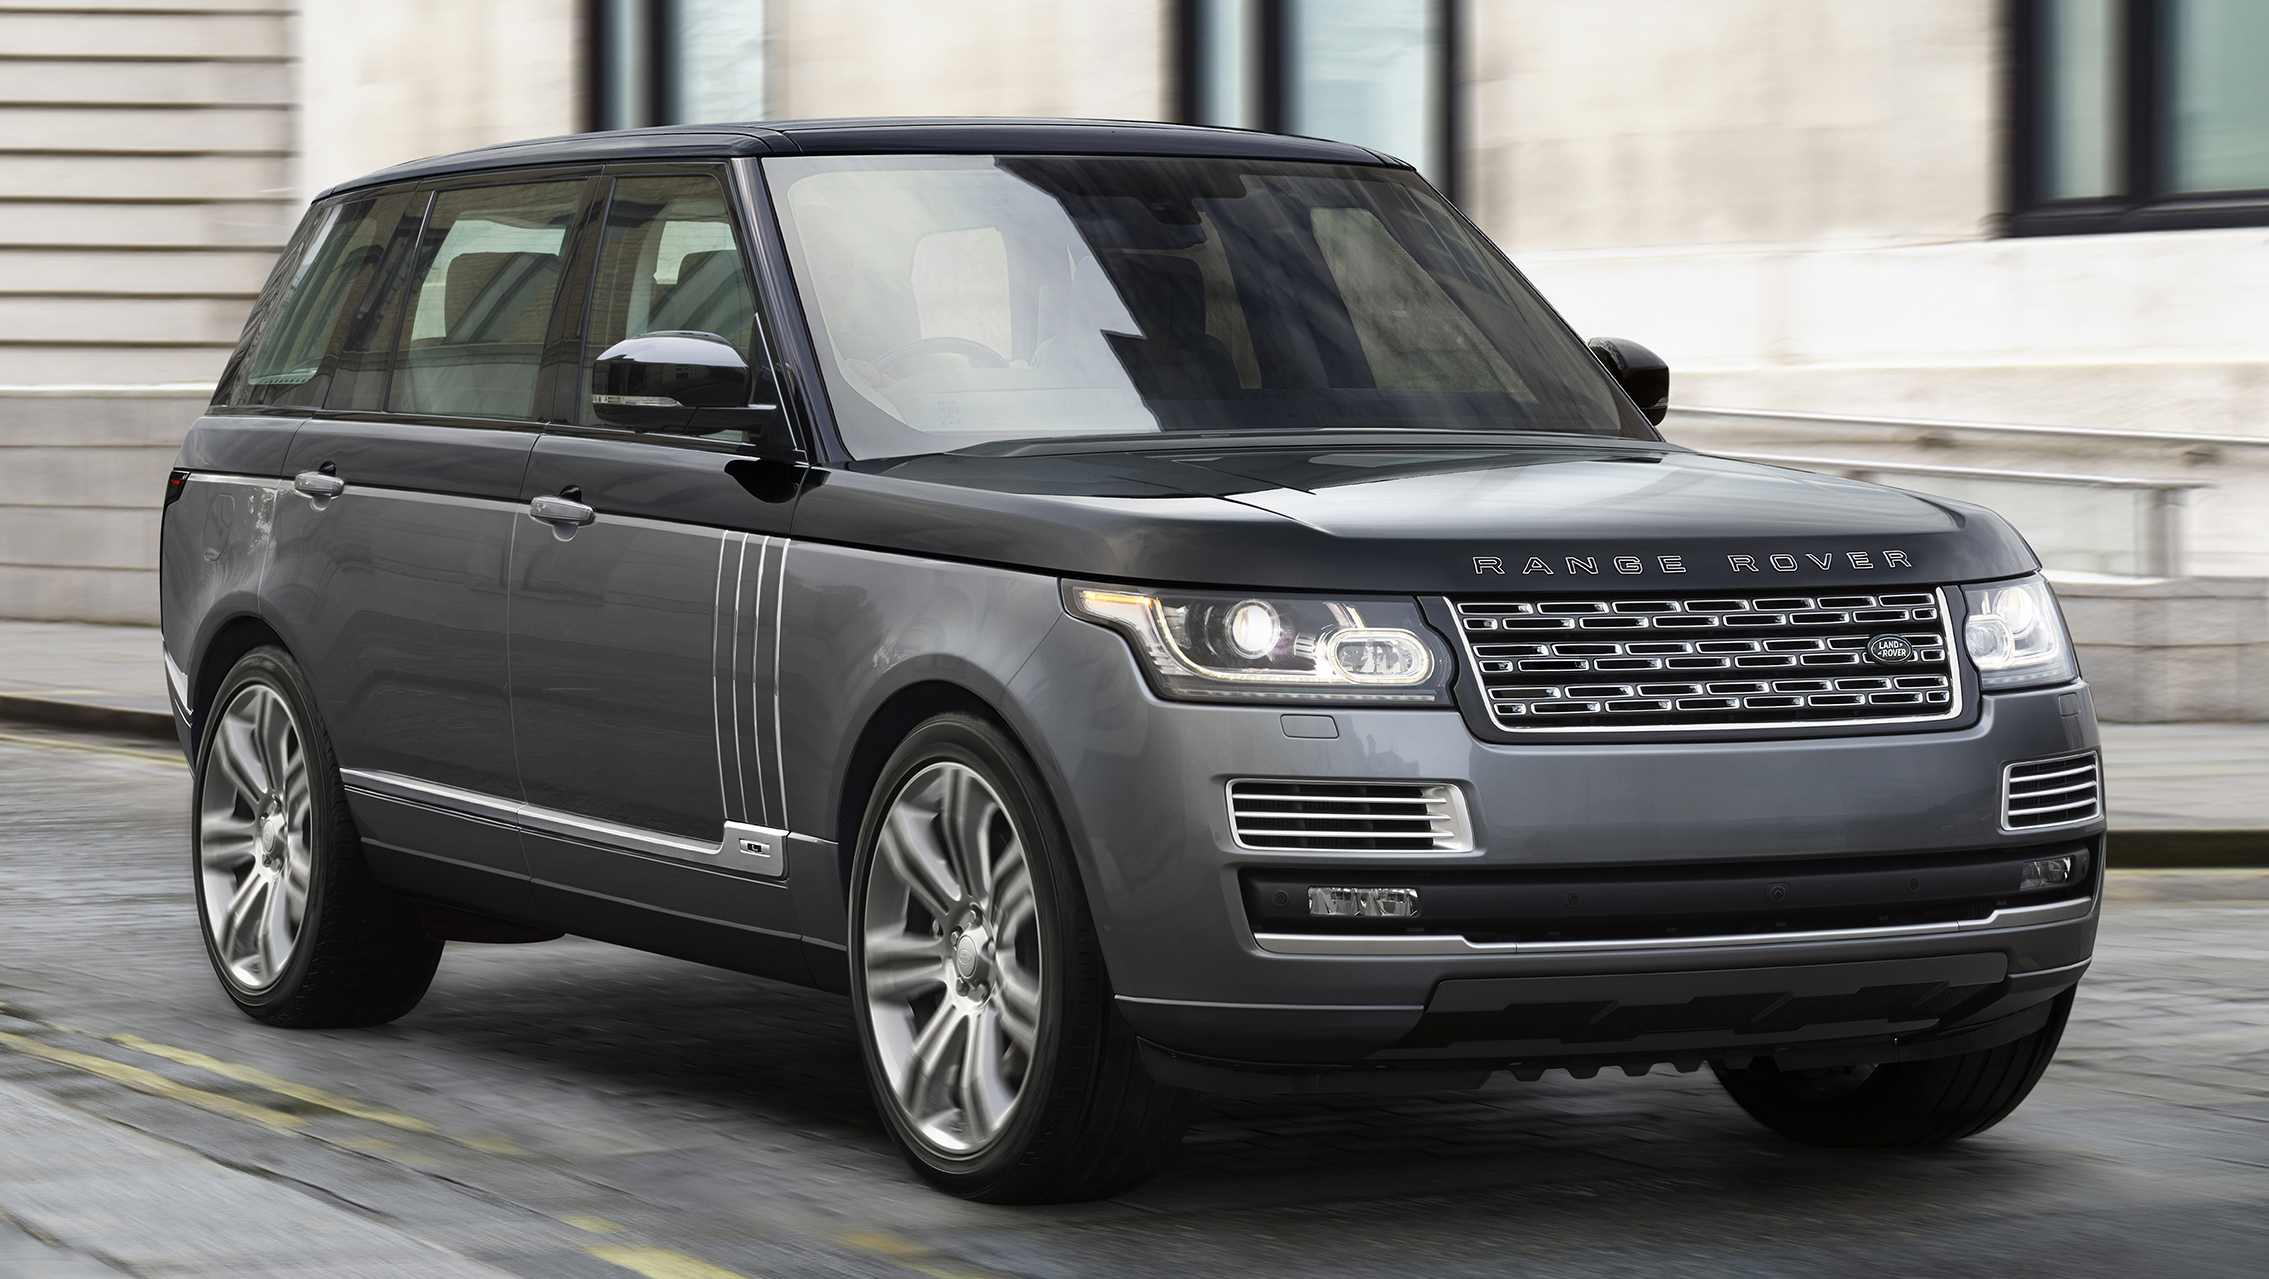 range rover svautobiography is the new range topper of the 2016 range rover line up ny debut. Black Bedroom Furniture Sets. Home Design Ideas